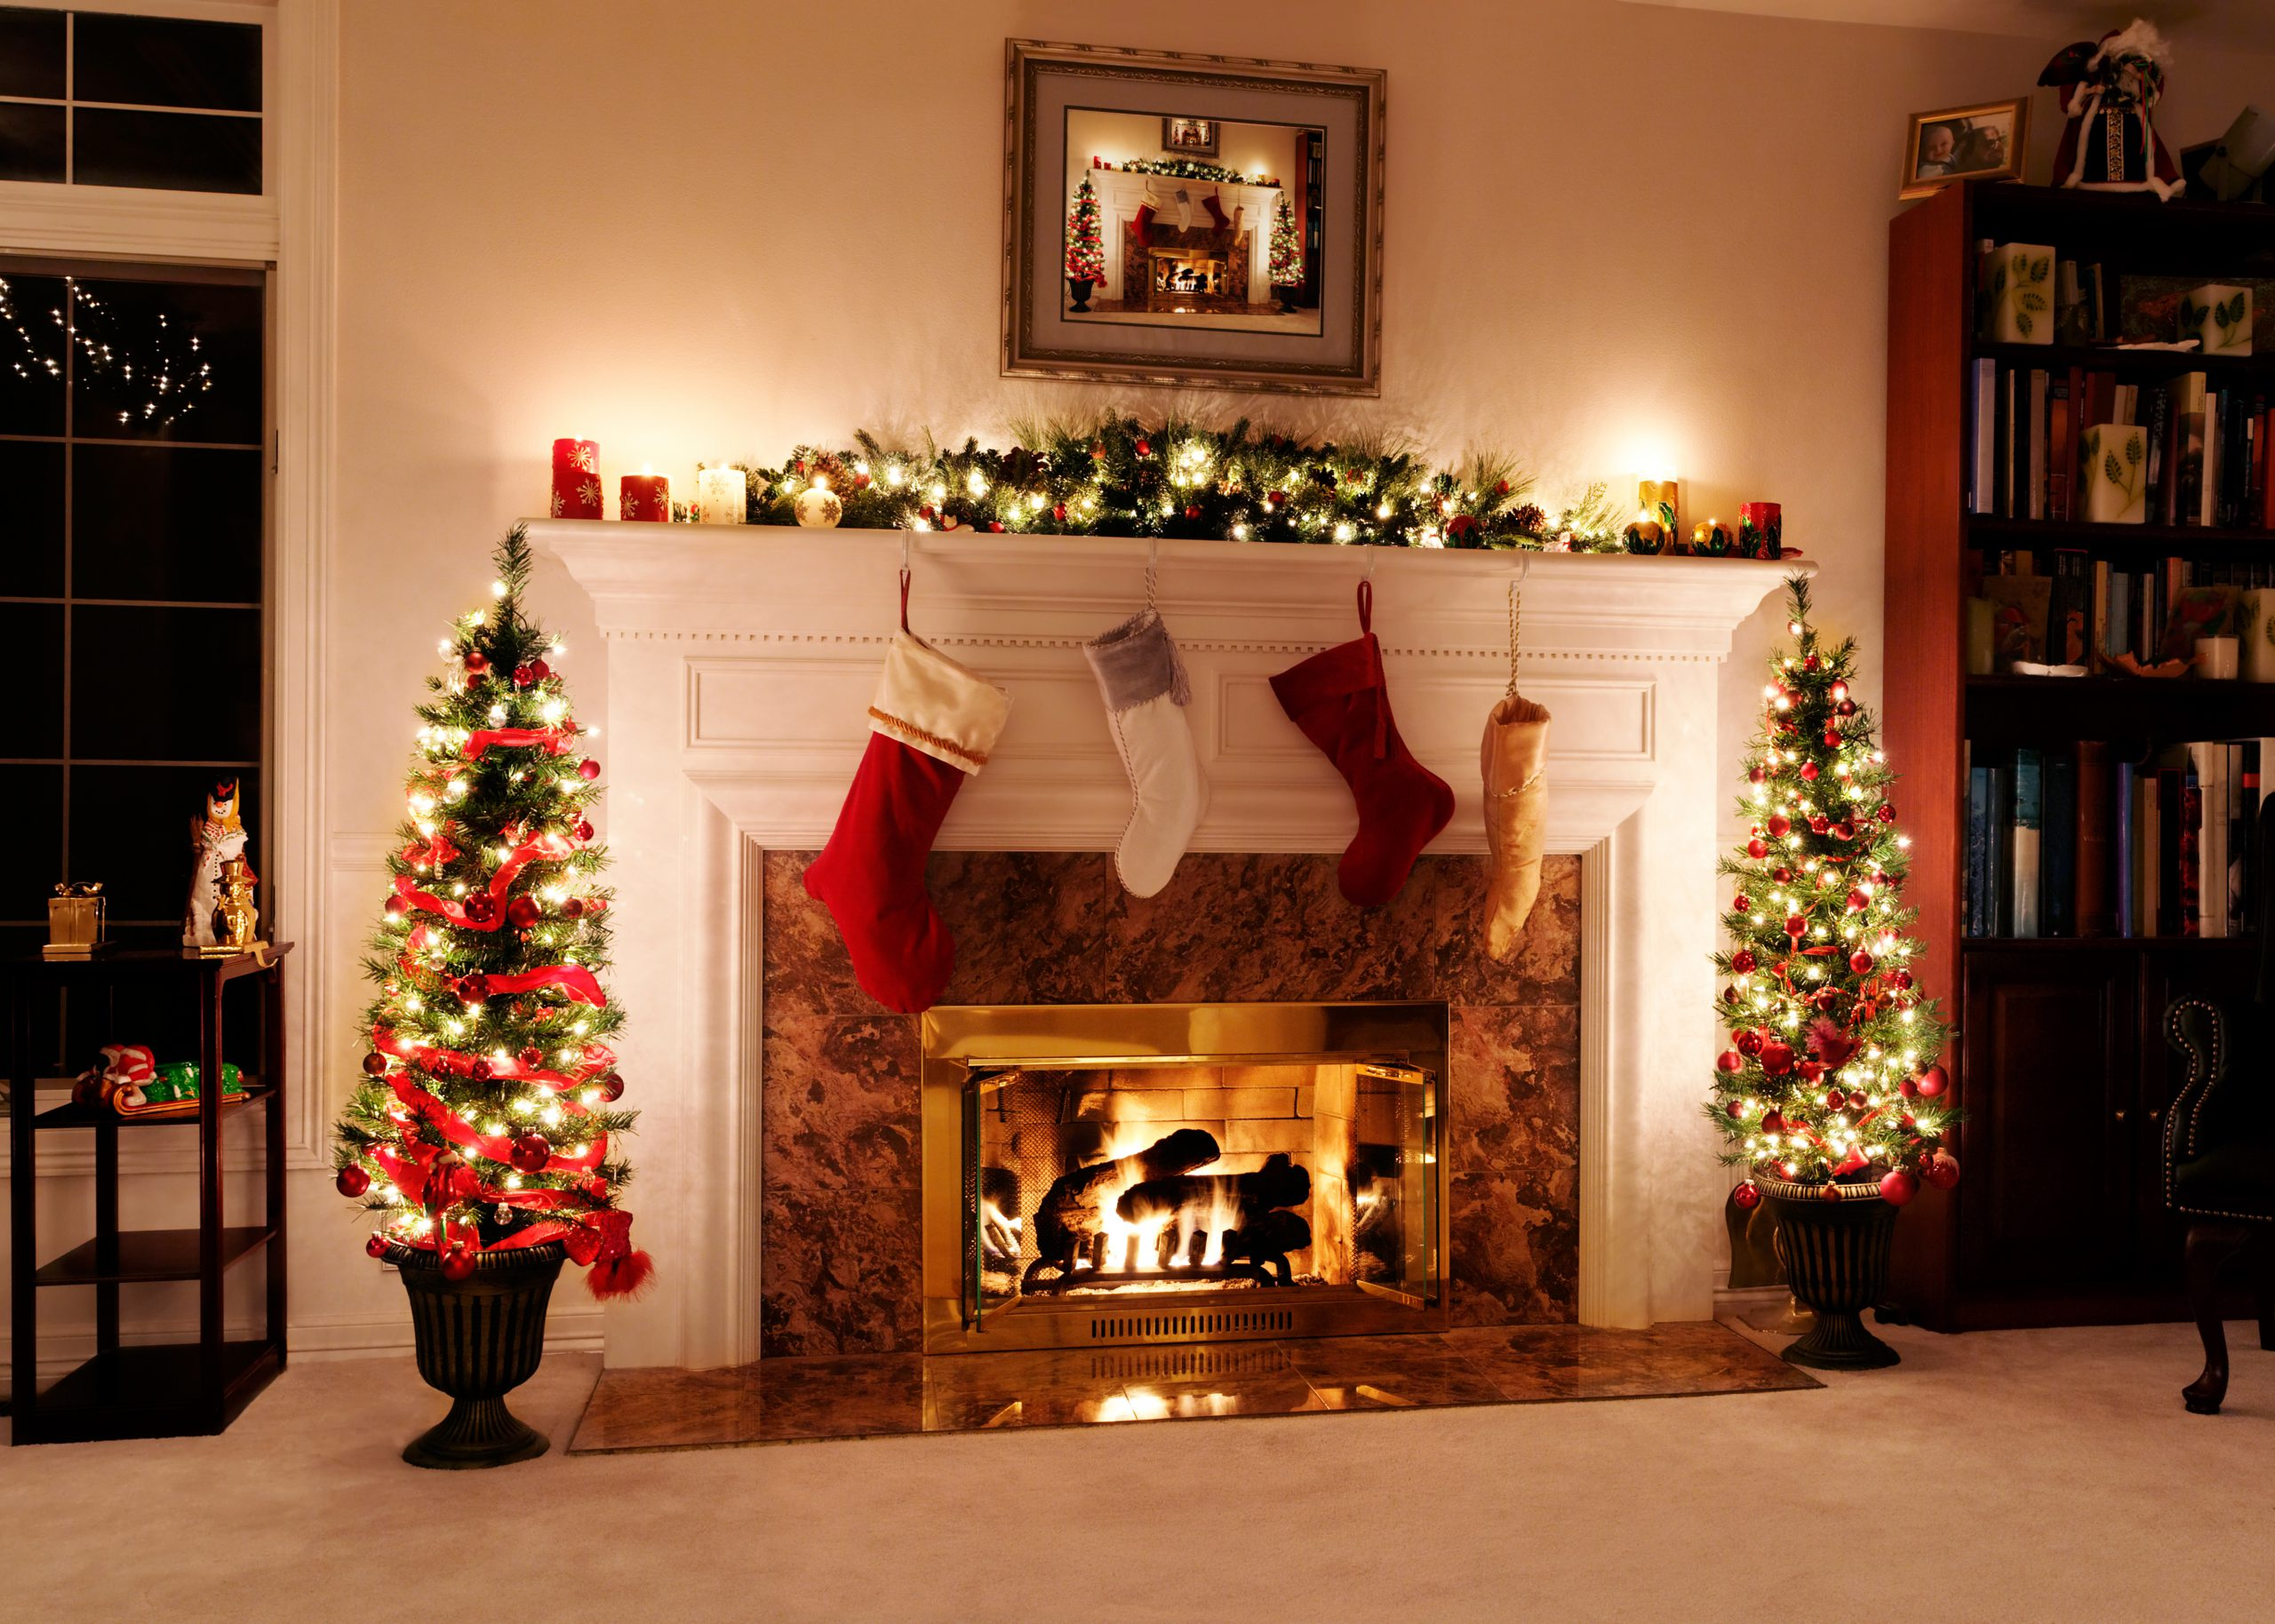 dos-donts-holiday-decoration-rental-home